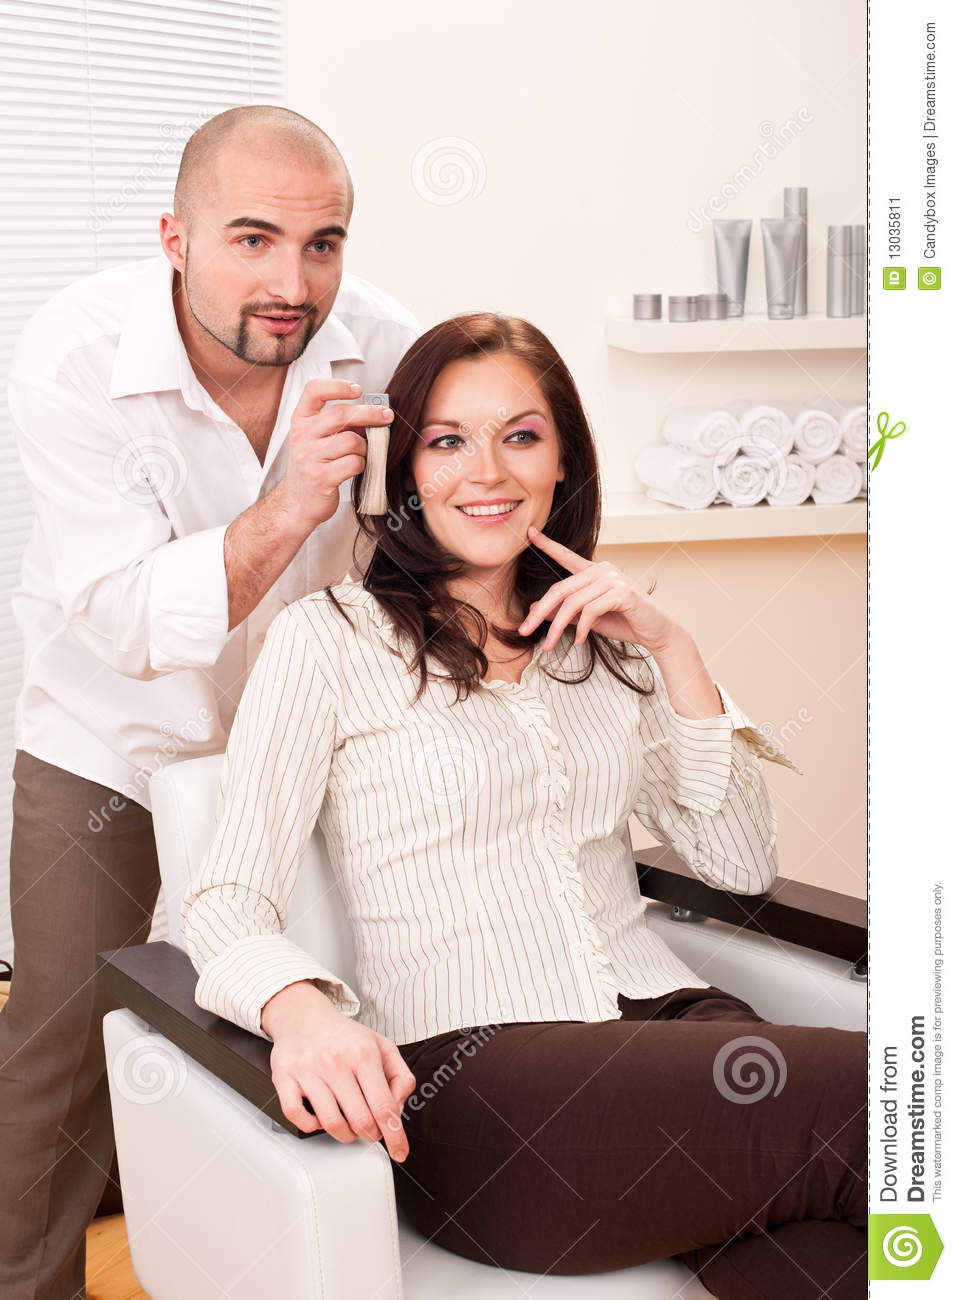 Professional Hairdresser : Professional Hairdresser Choose Hair Dye Color Stock Image - Image ...